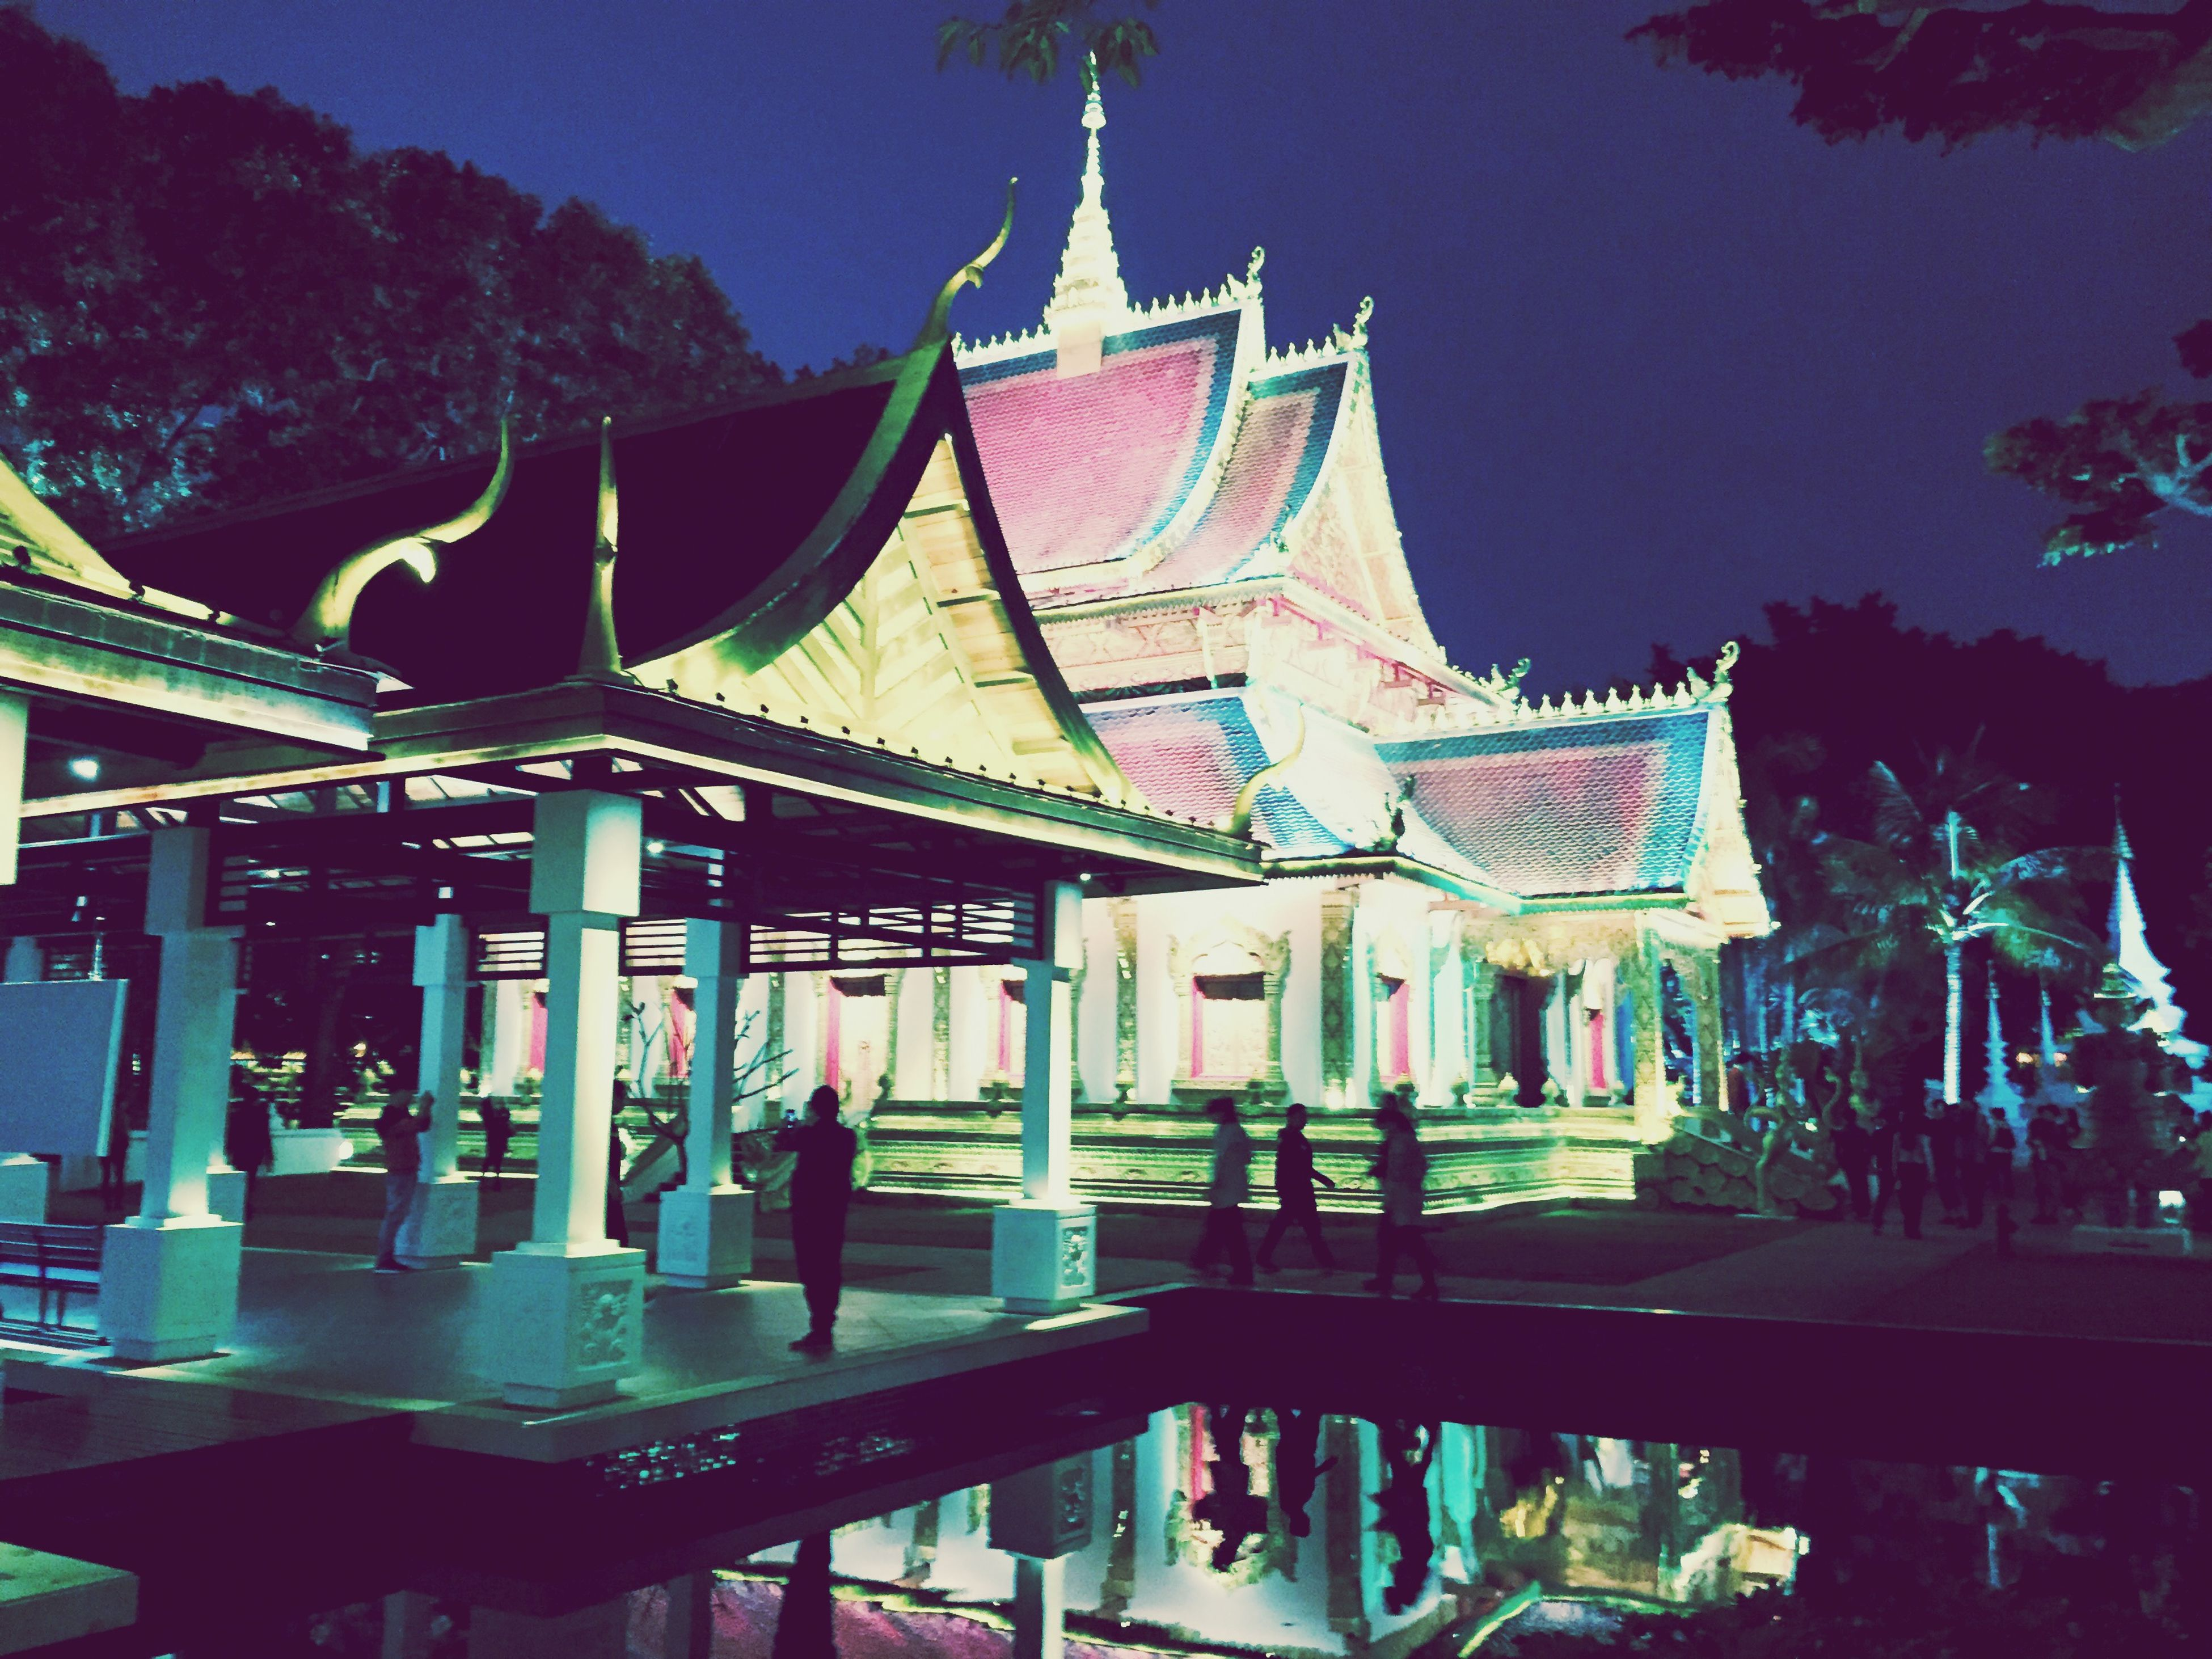 built structure, architecture, religion, place of worship, building exterior, spirituality, temple - building, low angle view, tradition, sky, illuminated, cultures, night, arts culture and entertainment, tree, travel destinations, decoration, famous place, outdoors